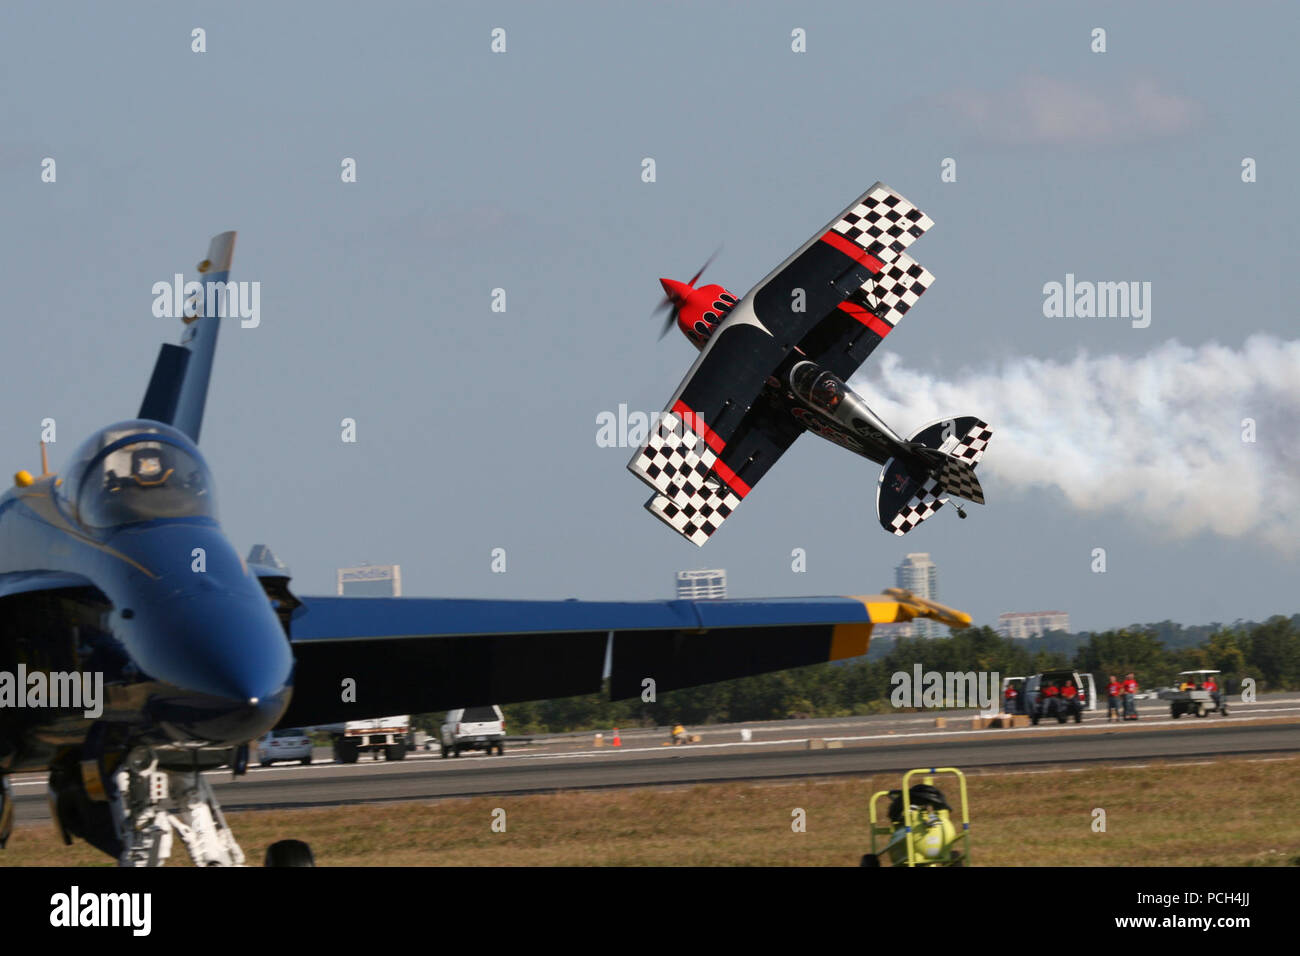 Skip Stewart performs acrobatic maneuvers in his Pitts S-2S bi-plane, named Prometheus, during the 2010 NAS Jax Air Show. The U.S Navy flight demonstration squadron, the Blue Angels, highlighted the show, which included more than 20 other acts with various military static displays. A record crowd of 277,000 people attended the annual two-day show. Stock Photo